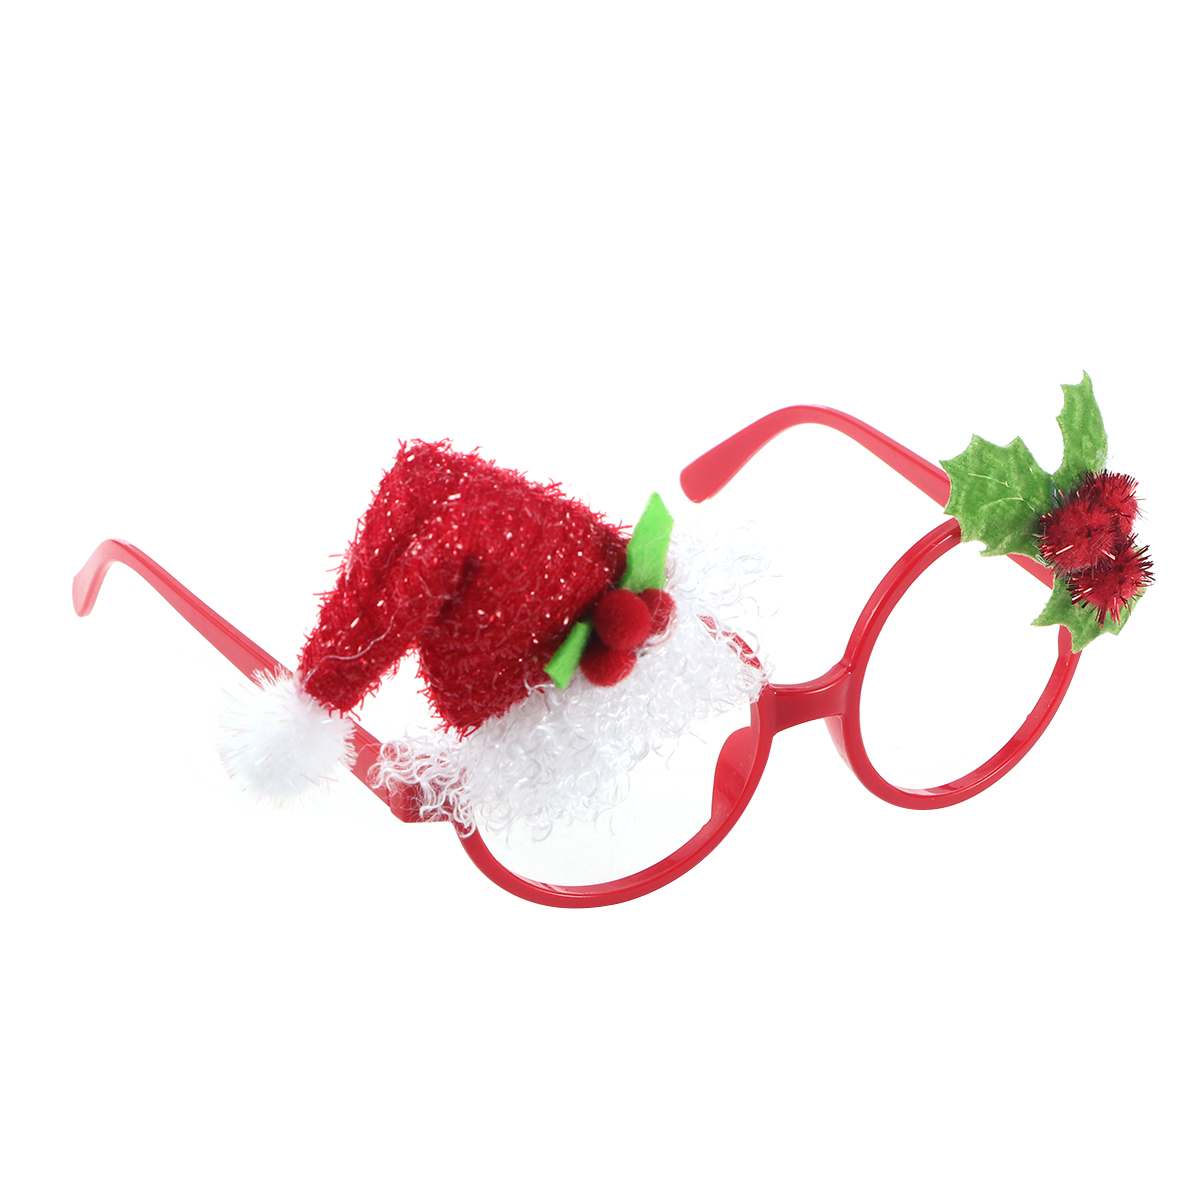 Christmas Fancy Dress Funny.Us 1 57 37 Off Christmas Fancy Dress Party Funny Glasses Frame Snowman Hat And Nose Sunglasses Novelty Costume Decoration Gifts Glasses In Party Diy